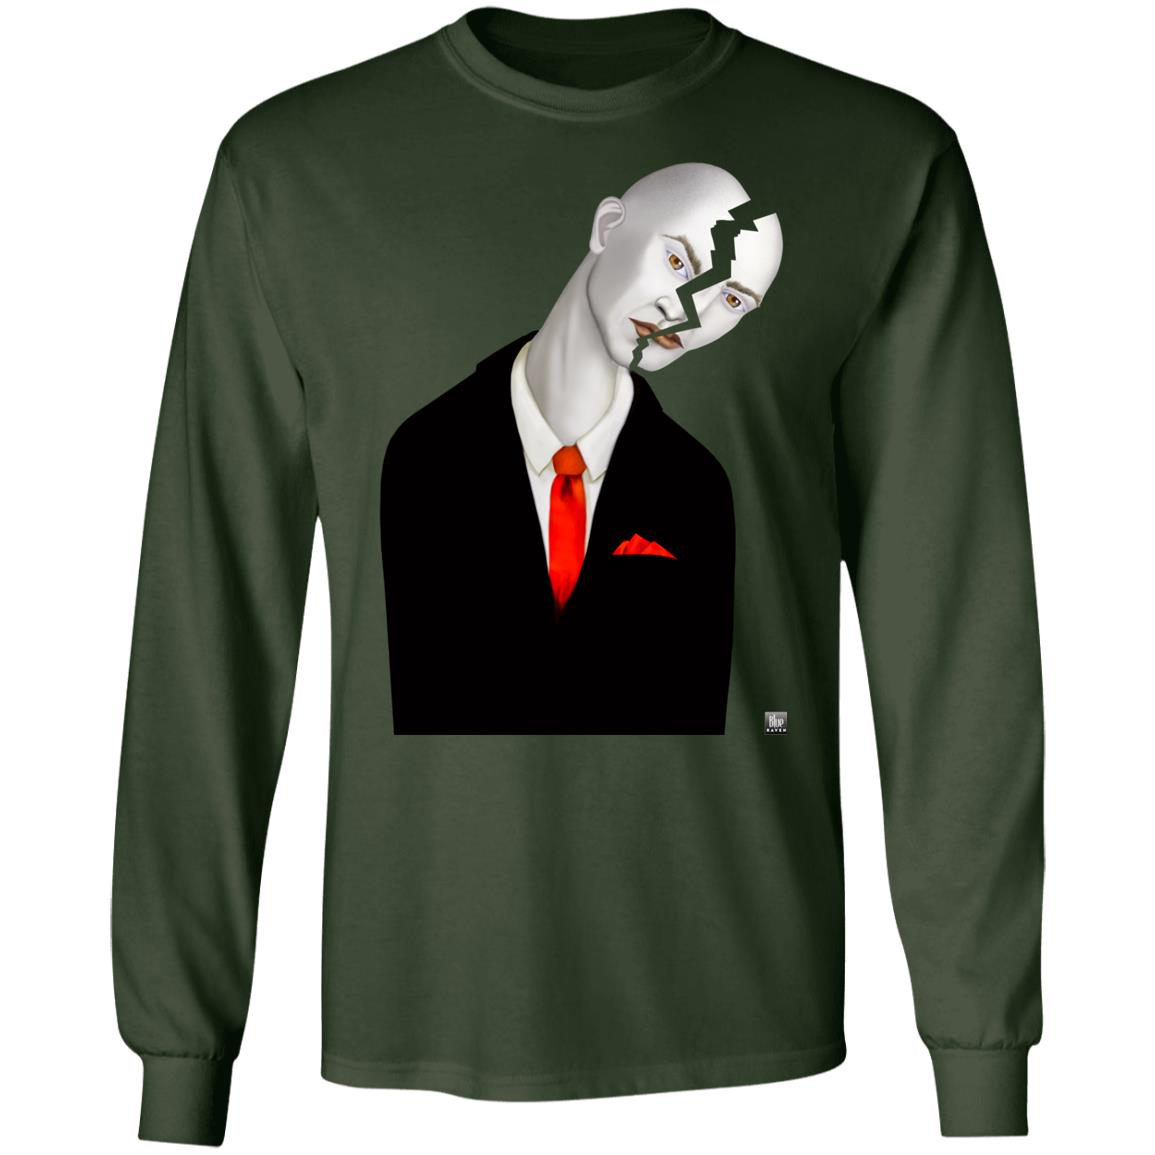 Cracked Up - Men's Long Sleeve T-Shirt